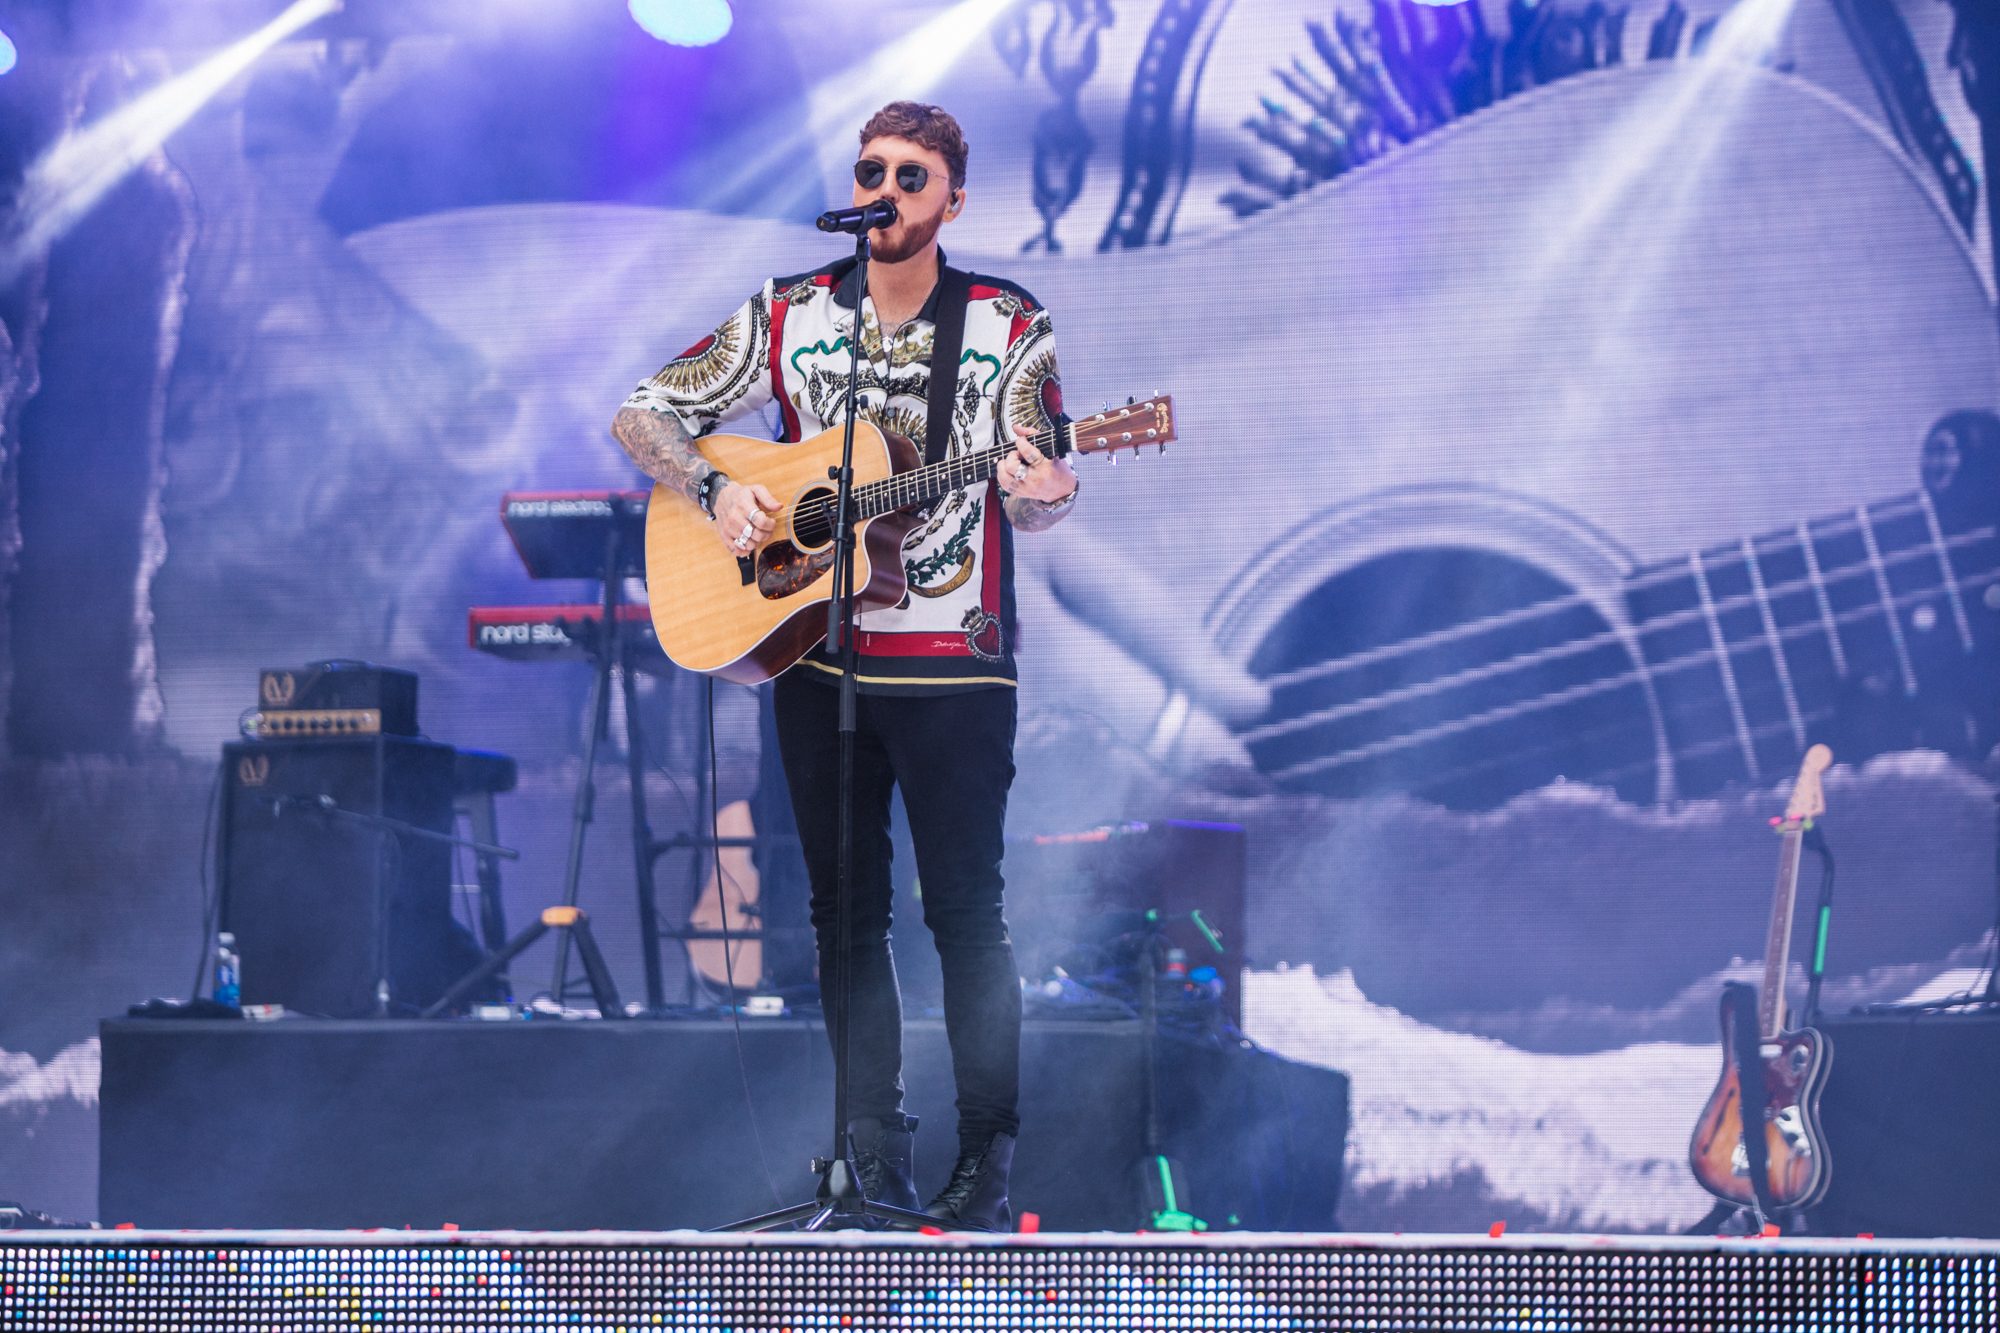 James Arthur You Re Nobody Til Somebody Loves You Live At The Summertime Ball Capital Alex roger, bert williams lyrics powered by www.musixmatch.com. james arthur you re nobody til somebody loves you live at the summertime ball capital